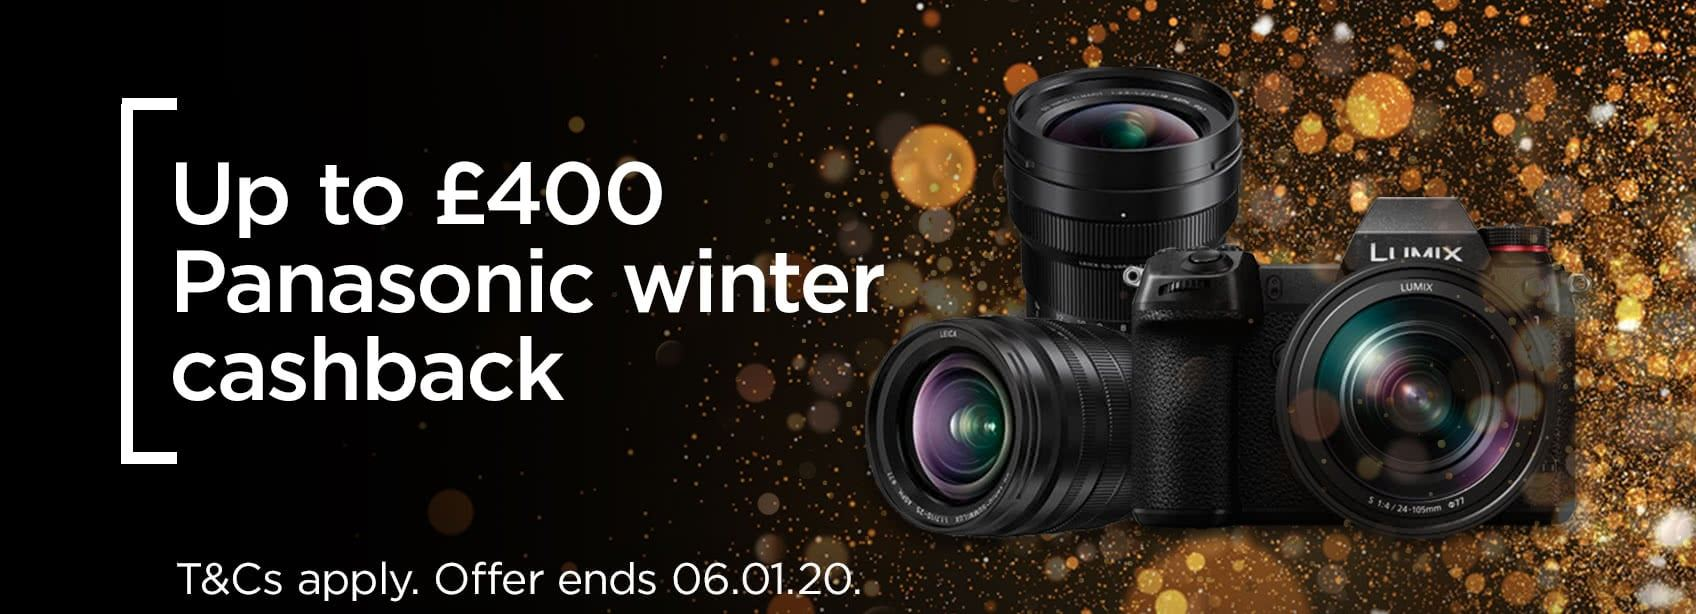 Panasonic Cashback | £400 Cashback on the Panasonic S1 and S1R